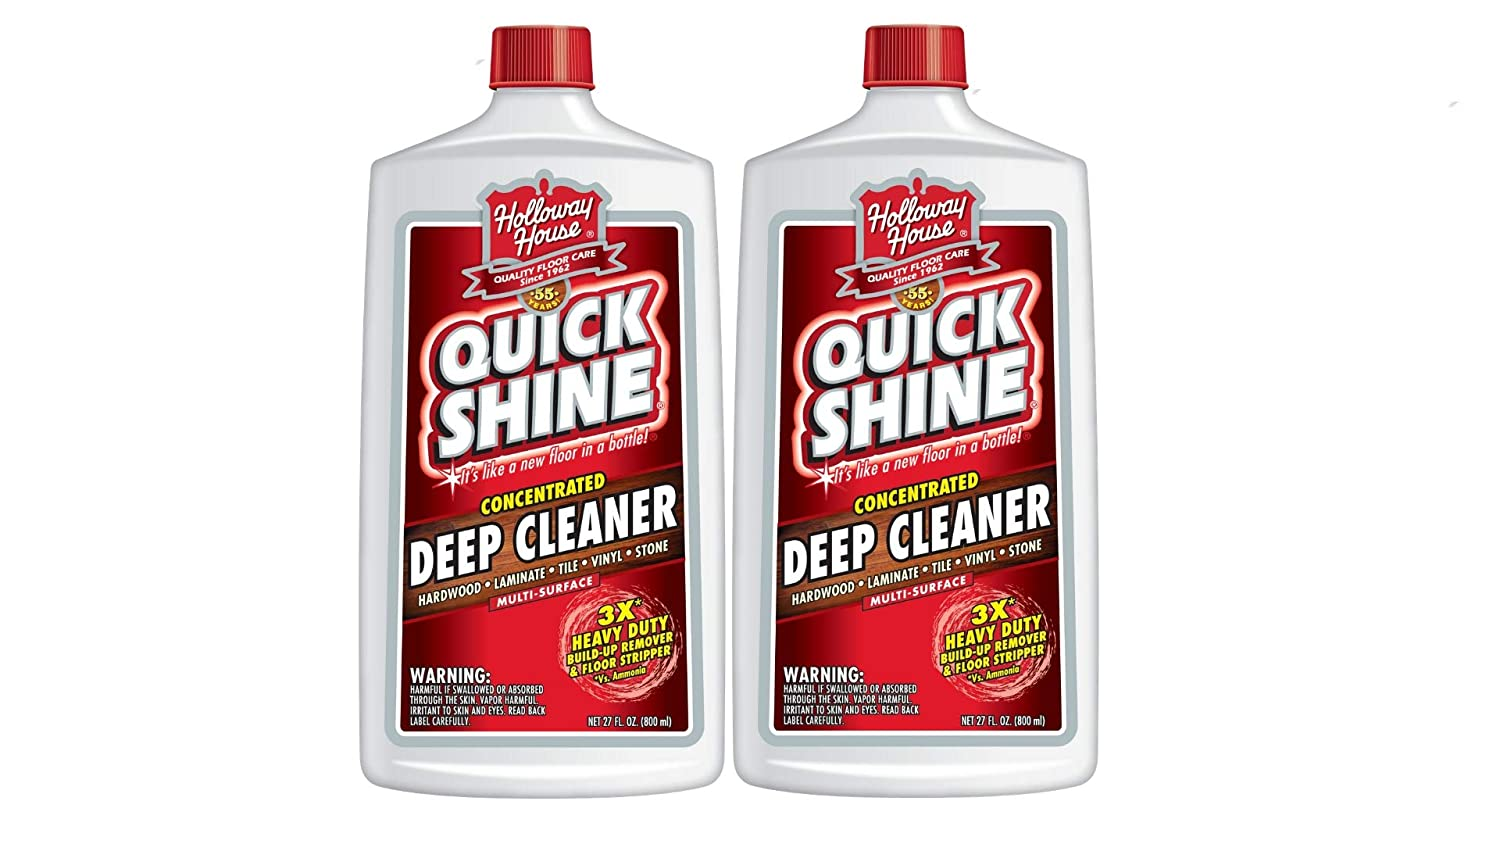 Amazon.com: Quick Shine Concentrated Deep Cleaner 27 Fluid Ounce, Single Bottle: Home & Kitchen